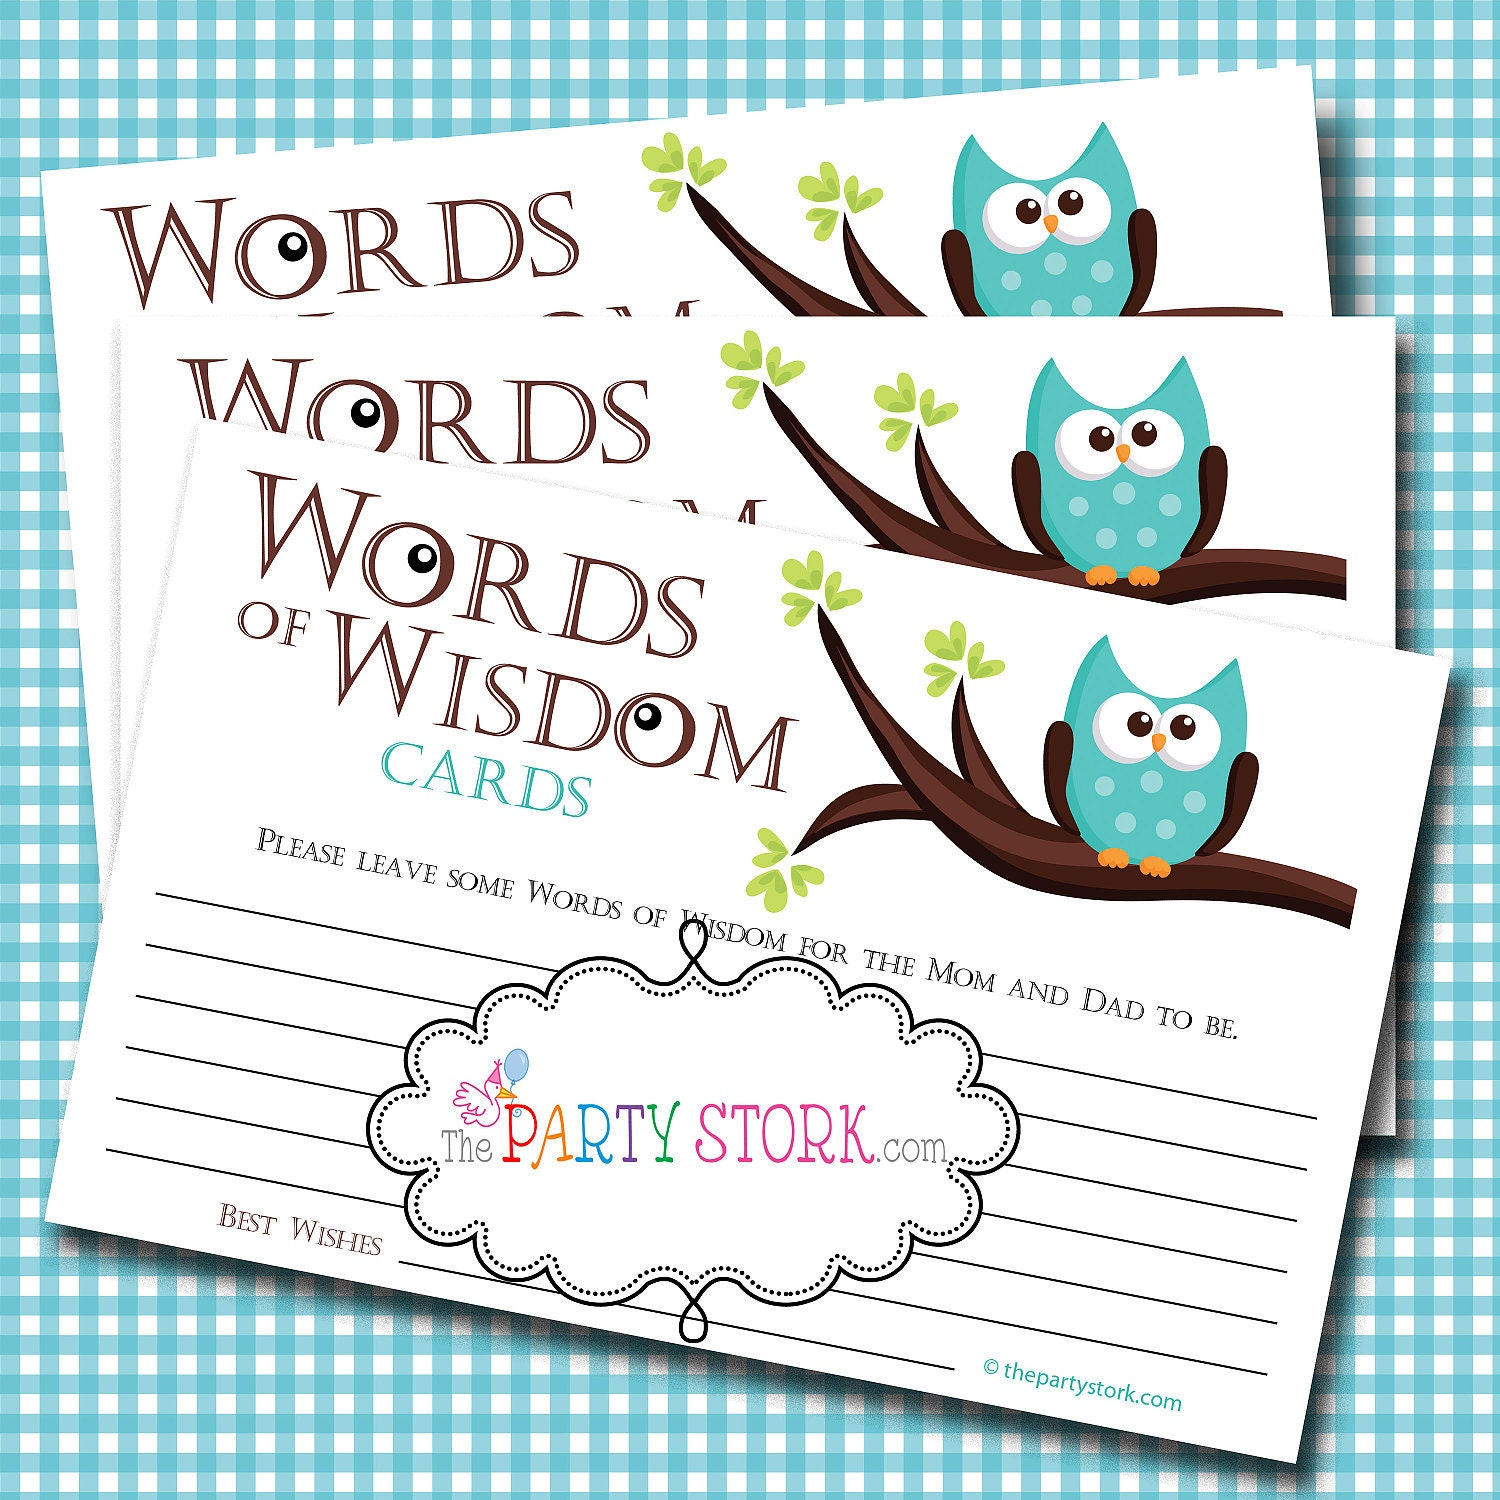 Bathroom Design Games: Words Of Wisdom Advice Cards Owl Baby Shower Games Baby